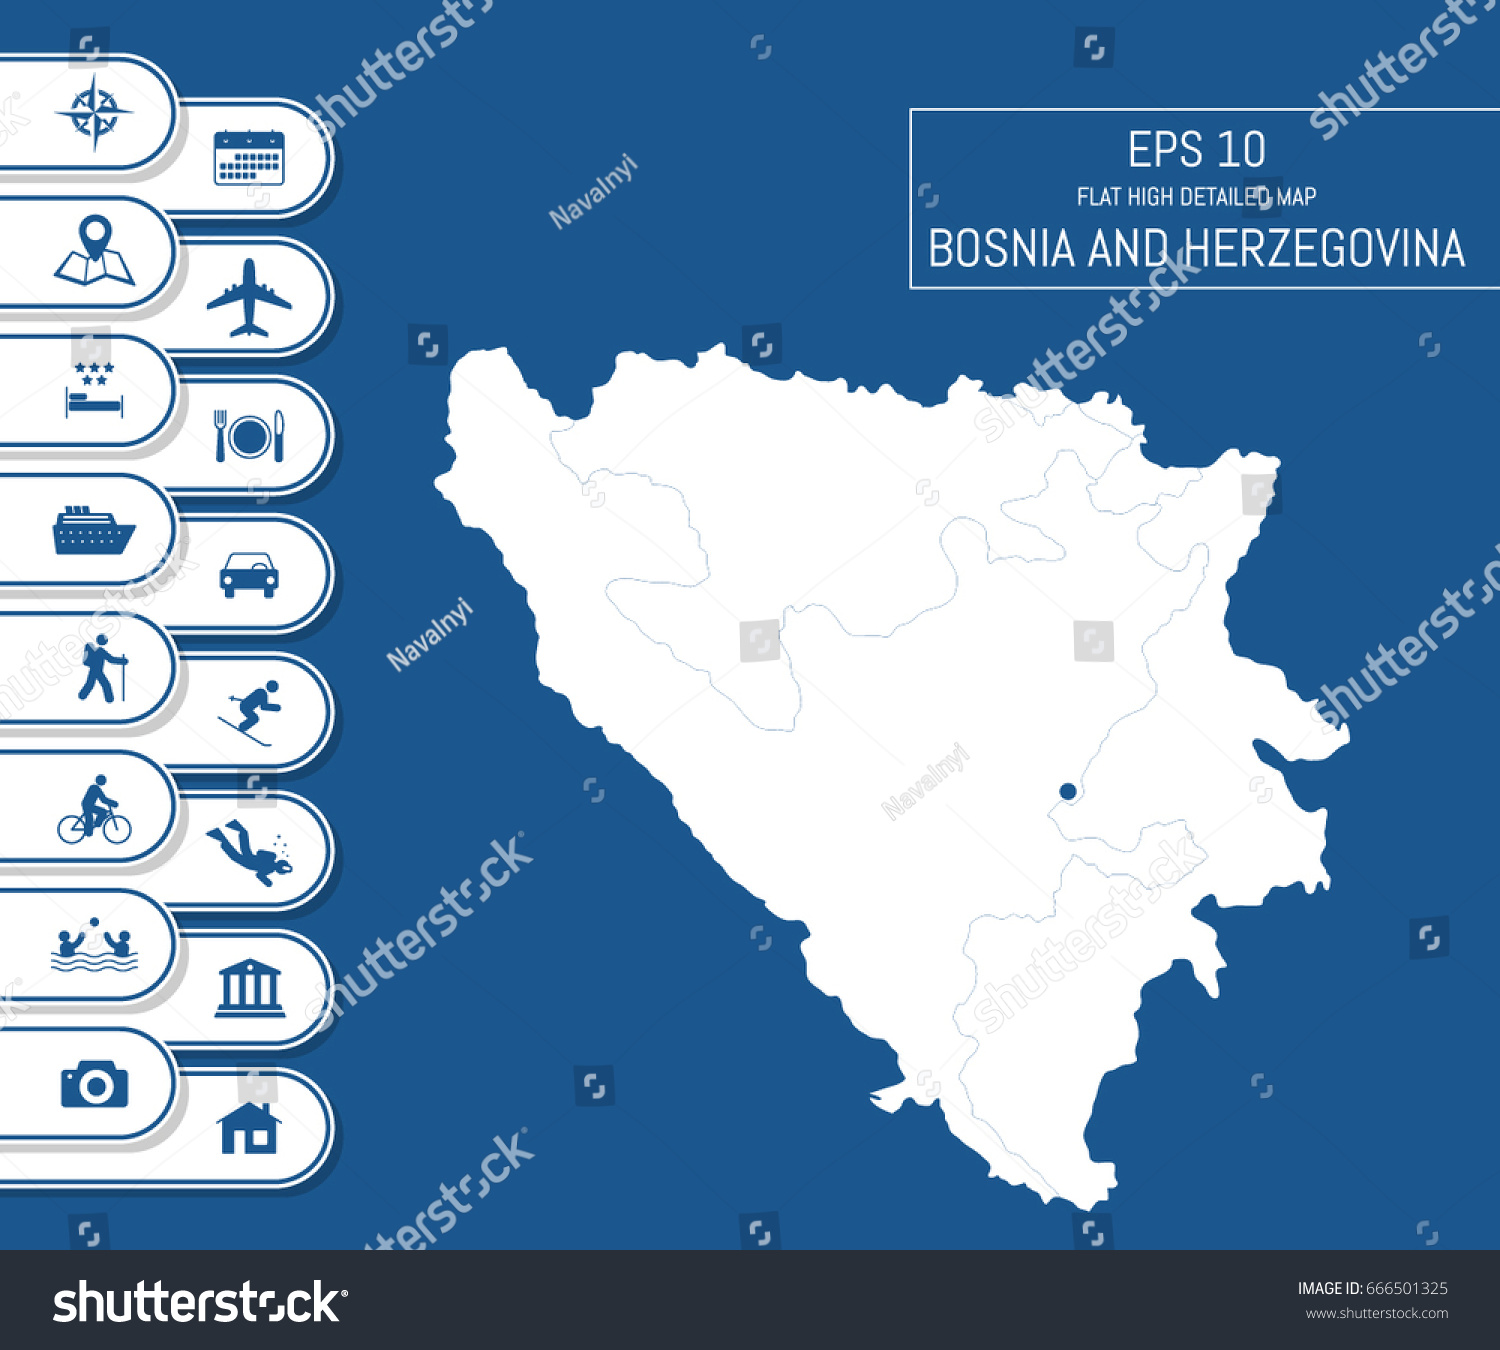 Flat High Detailed Bosnia Herzegovina Map Stock Vector 666501325